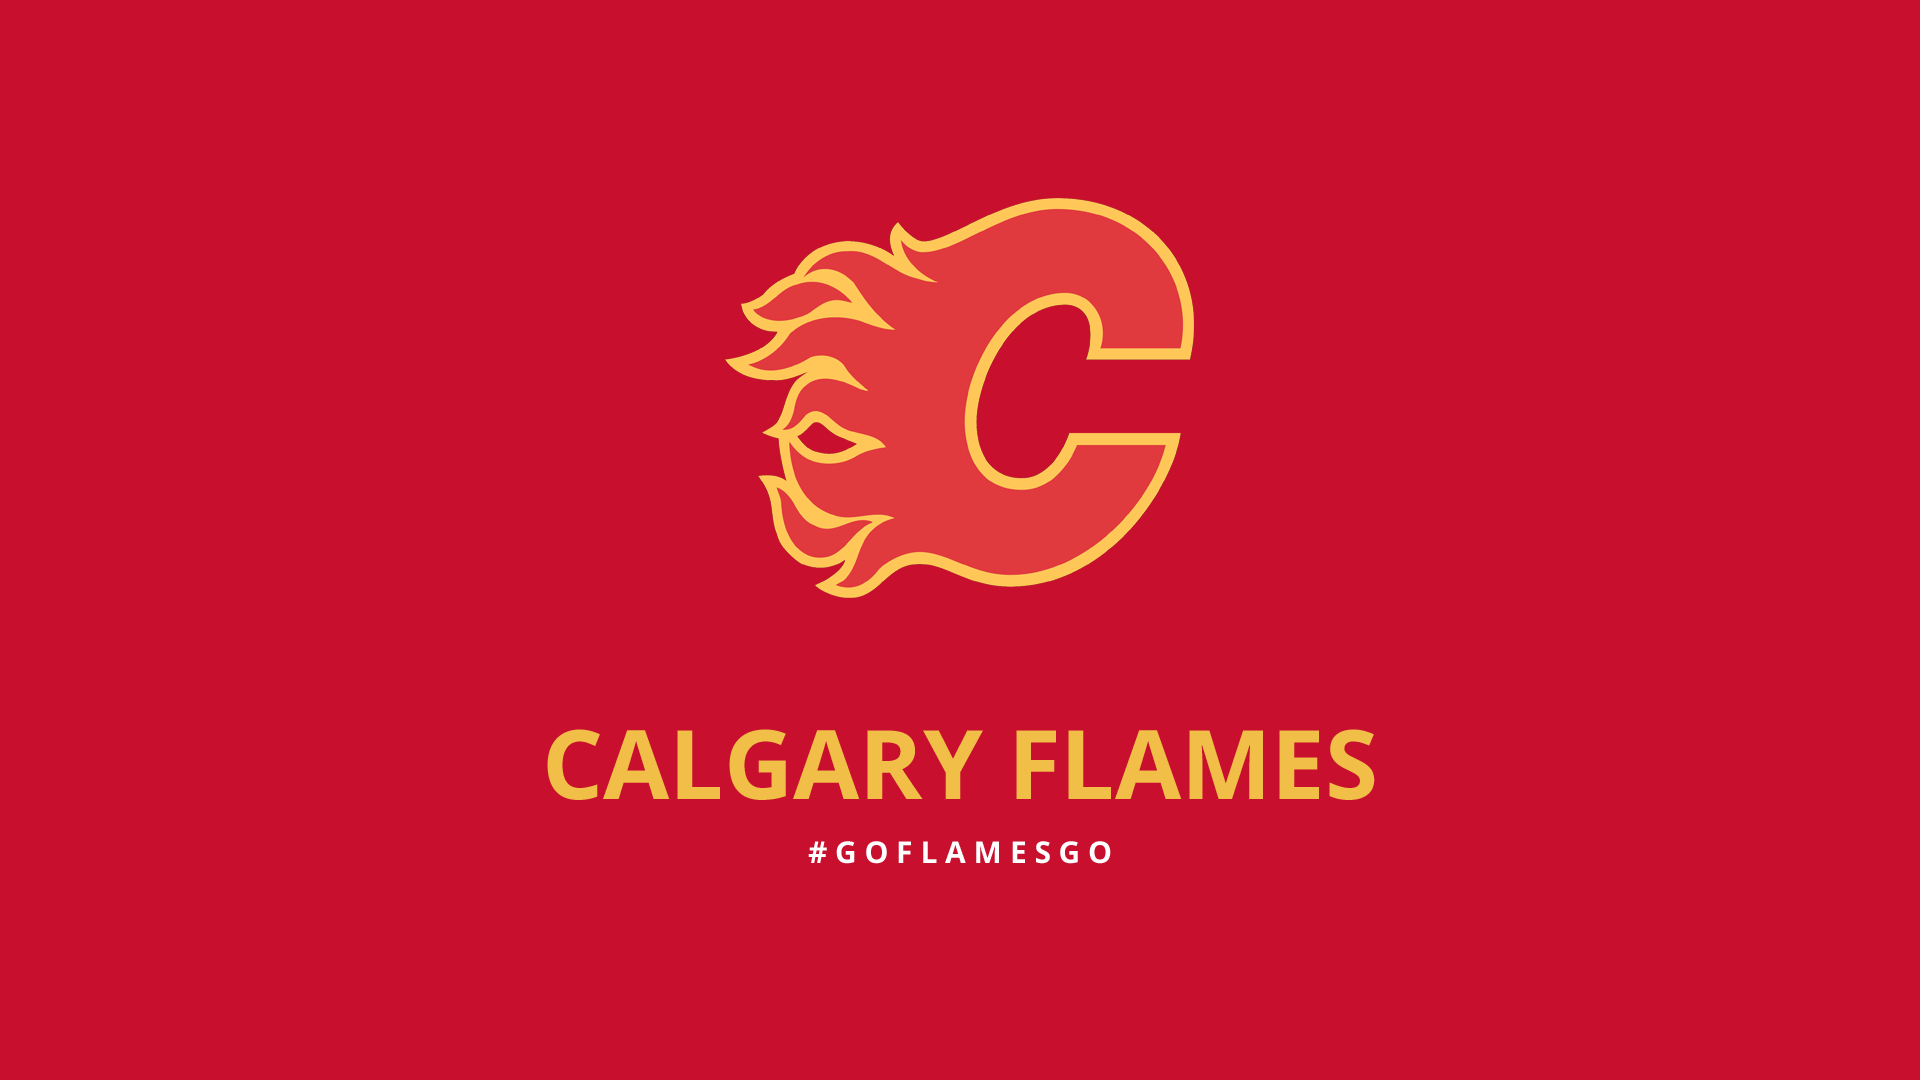 Minimalist Calgary Flames wallpaper by lfiore 1920x1080